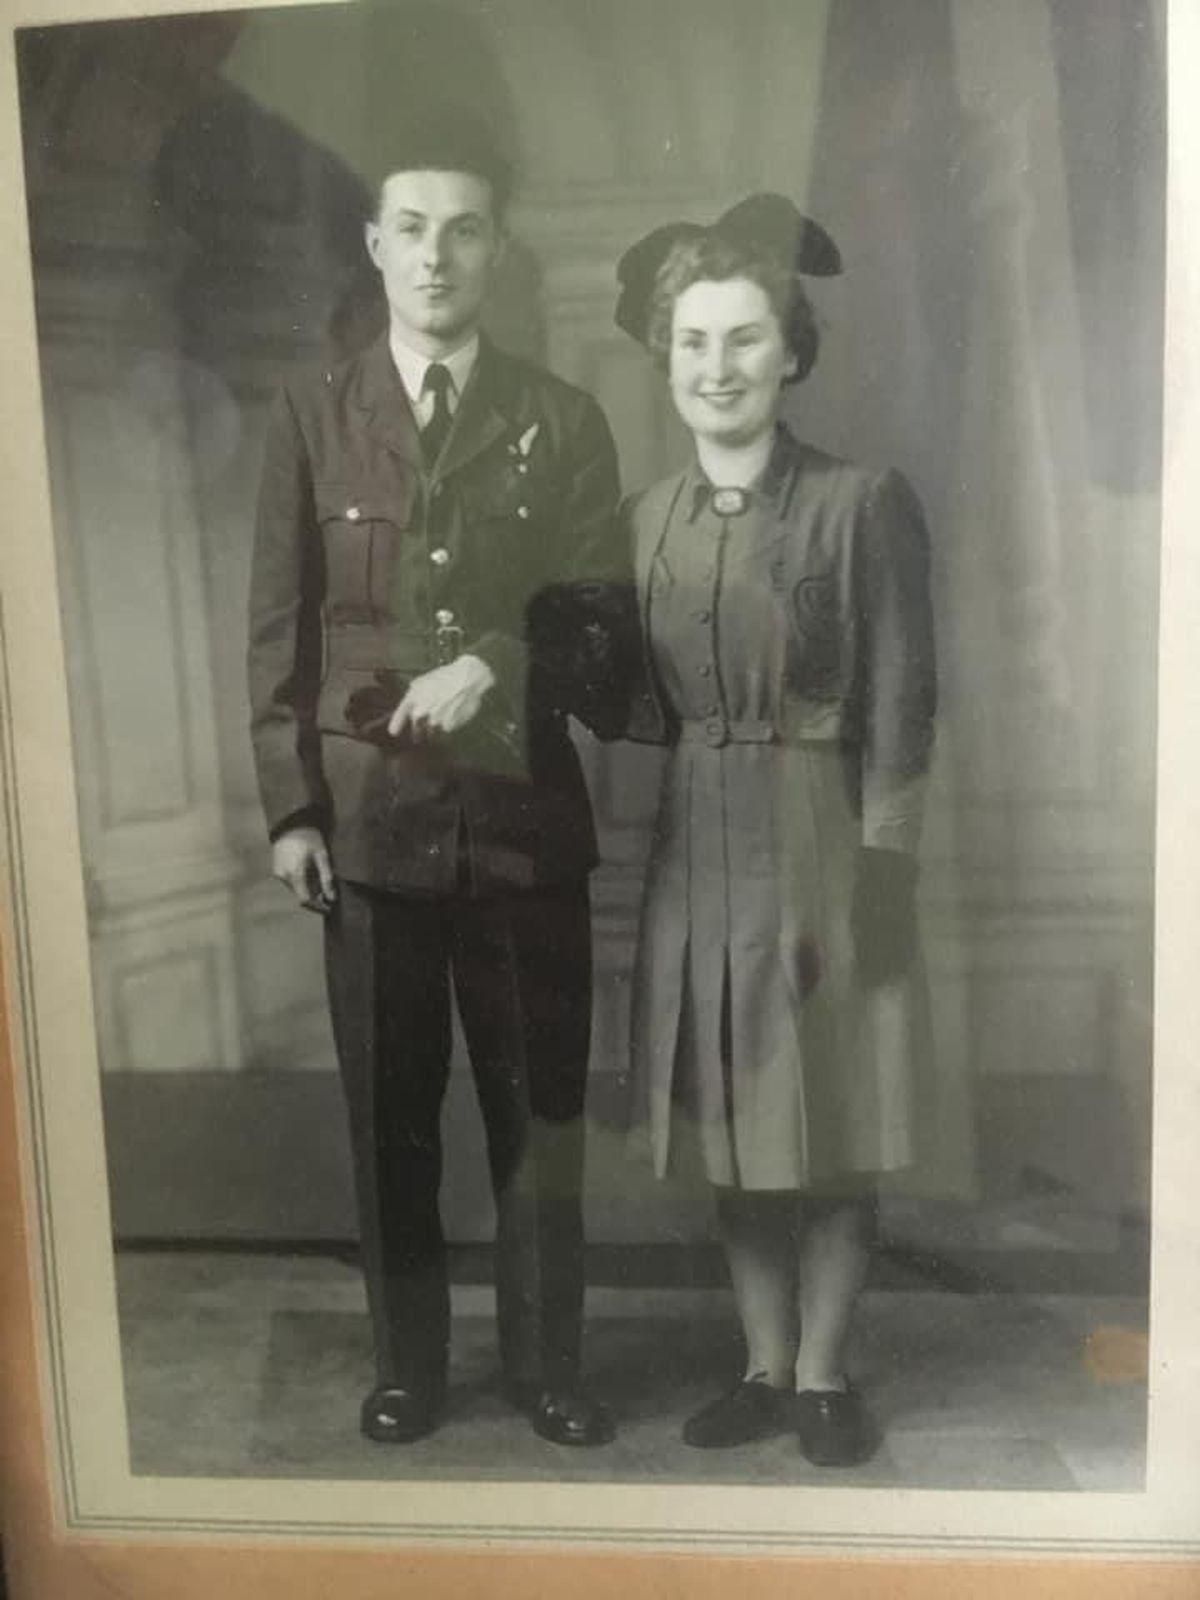 Wilfred and Winifred Dawson who married after meeting while serving in the RAF and the Women's Auxiliary Air Force in Lincoln